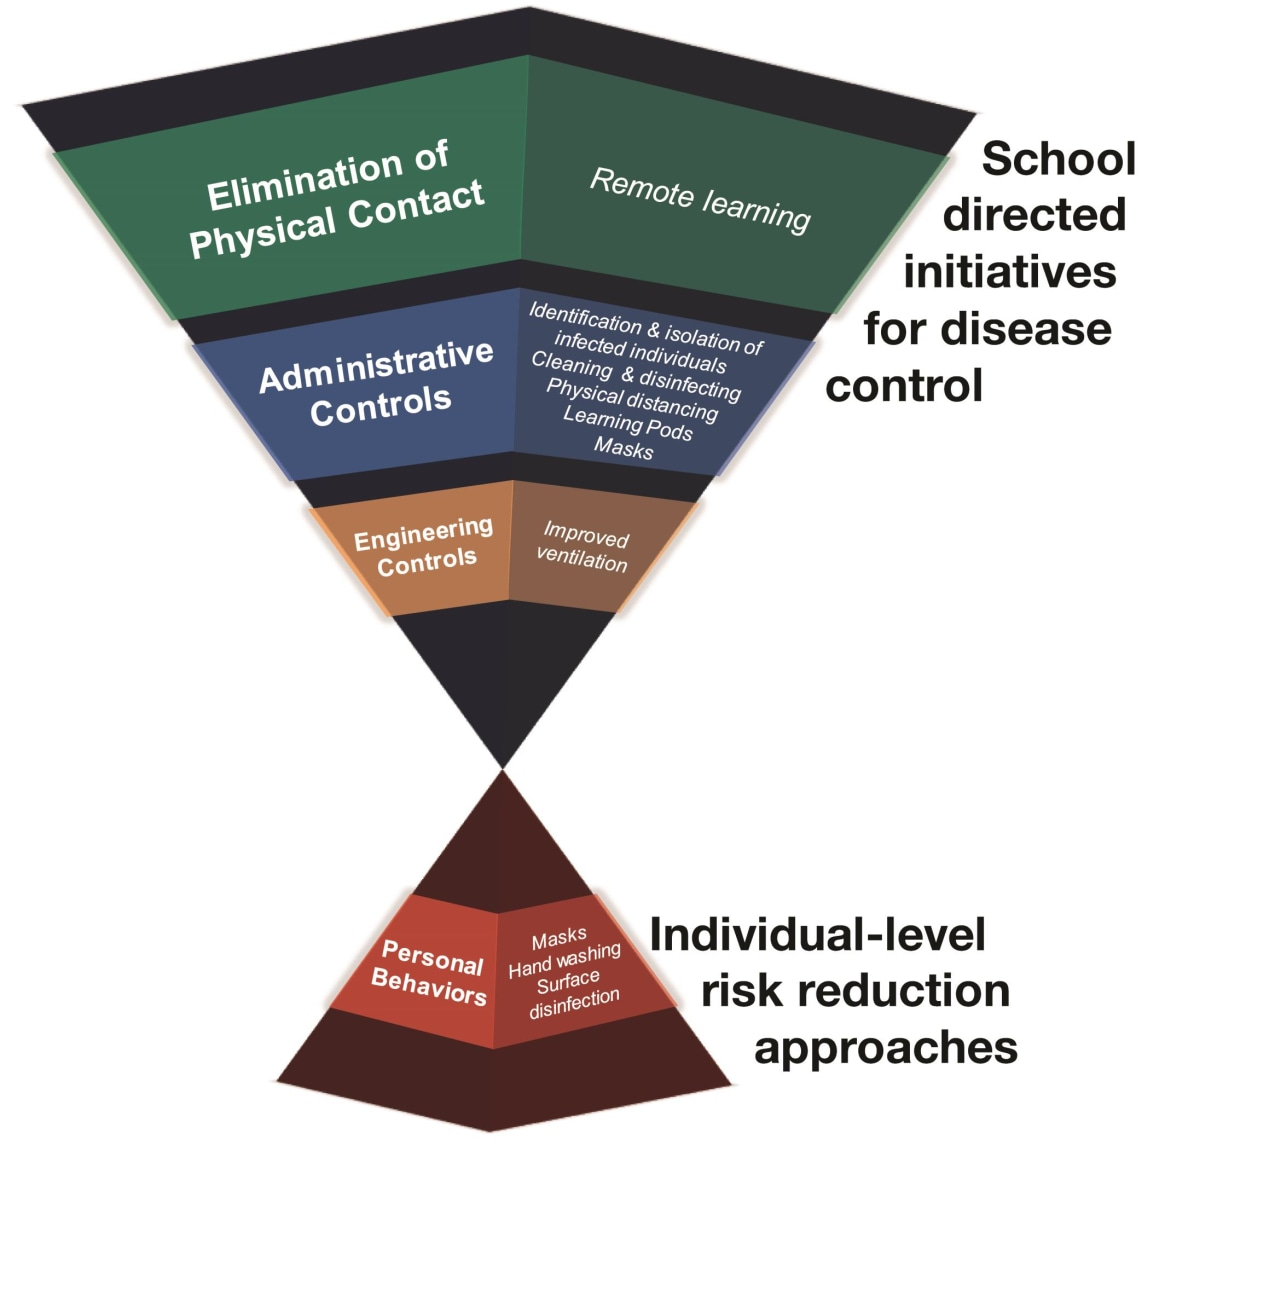 Hourglass shaped infographic School directed innitiatives for disease control Elimination of physical contact - remote learning Administrative controls - Identification and isolation of infected individuals ; Cleaning and disinfecting Physical distancing Learning pods Masks  Individual-leve risk reduction approaches Personal behaviors: masks, handwashing, surface disinfection